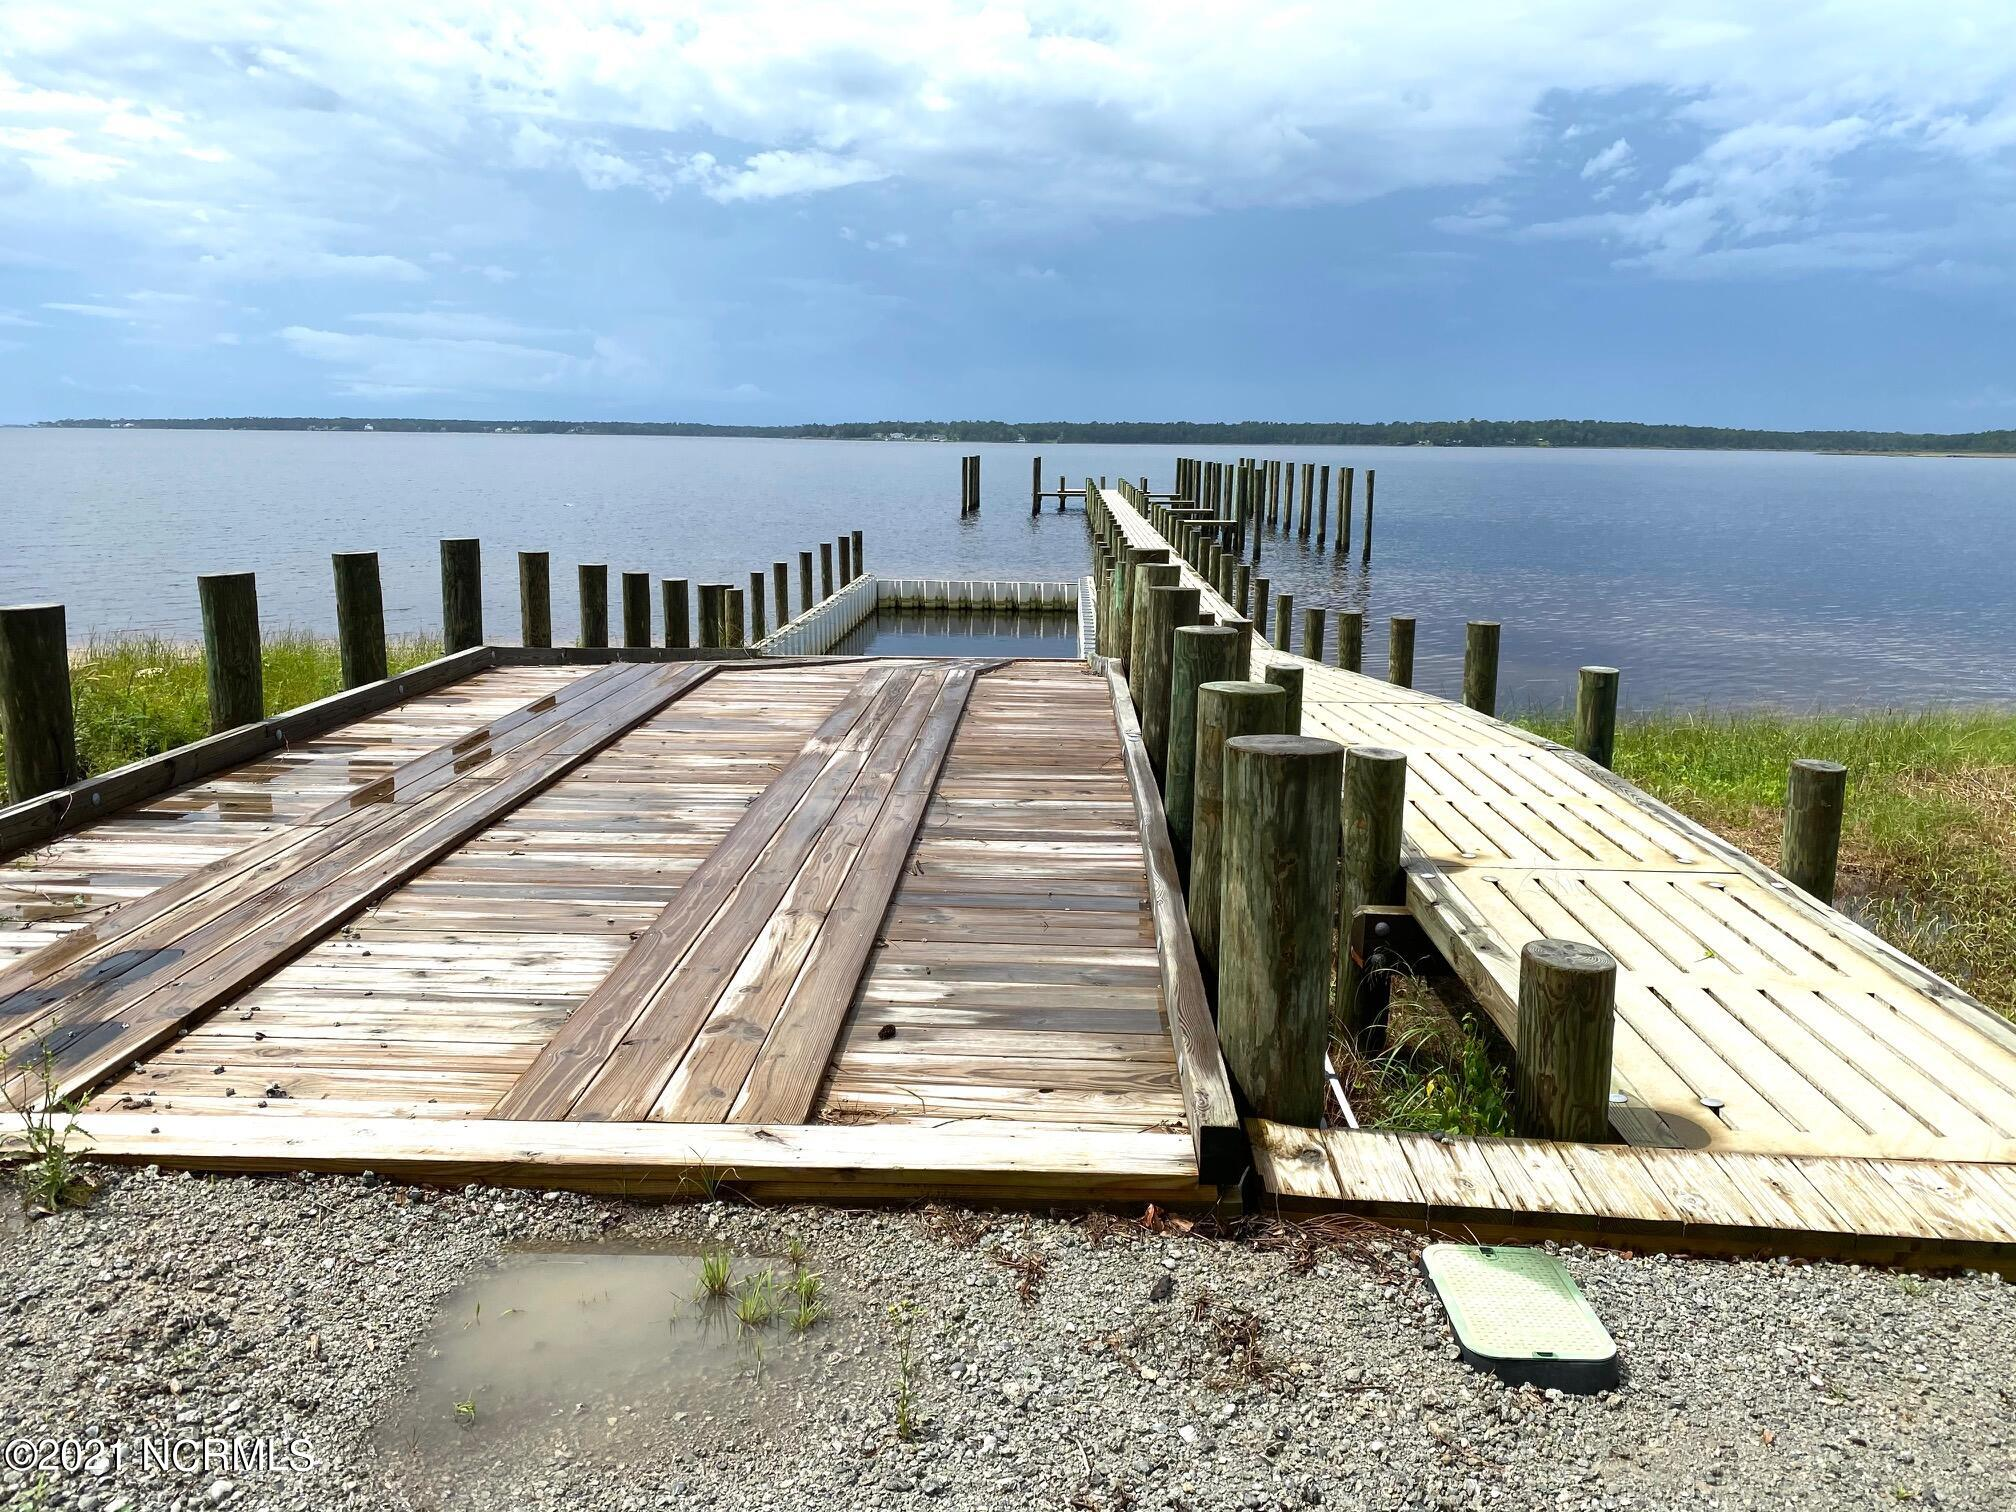 Boat Ramp and Dock for Residents